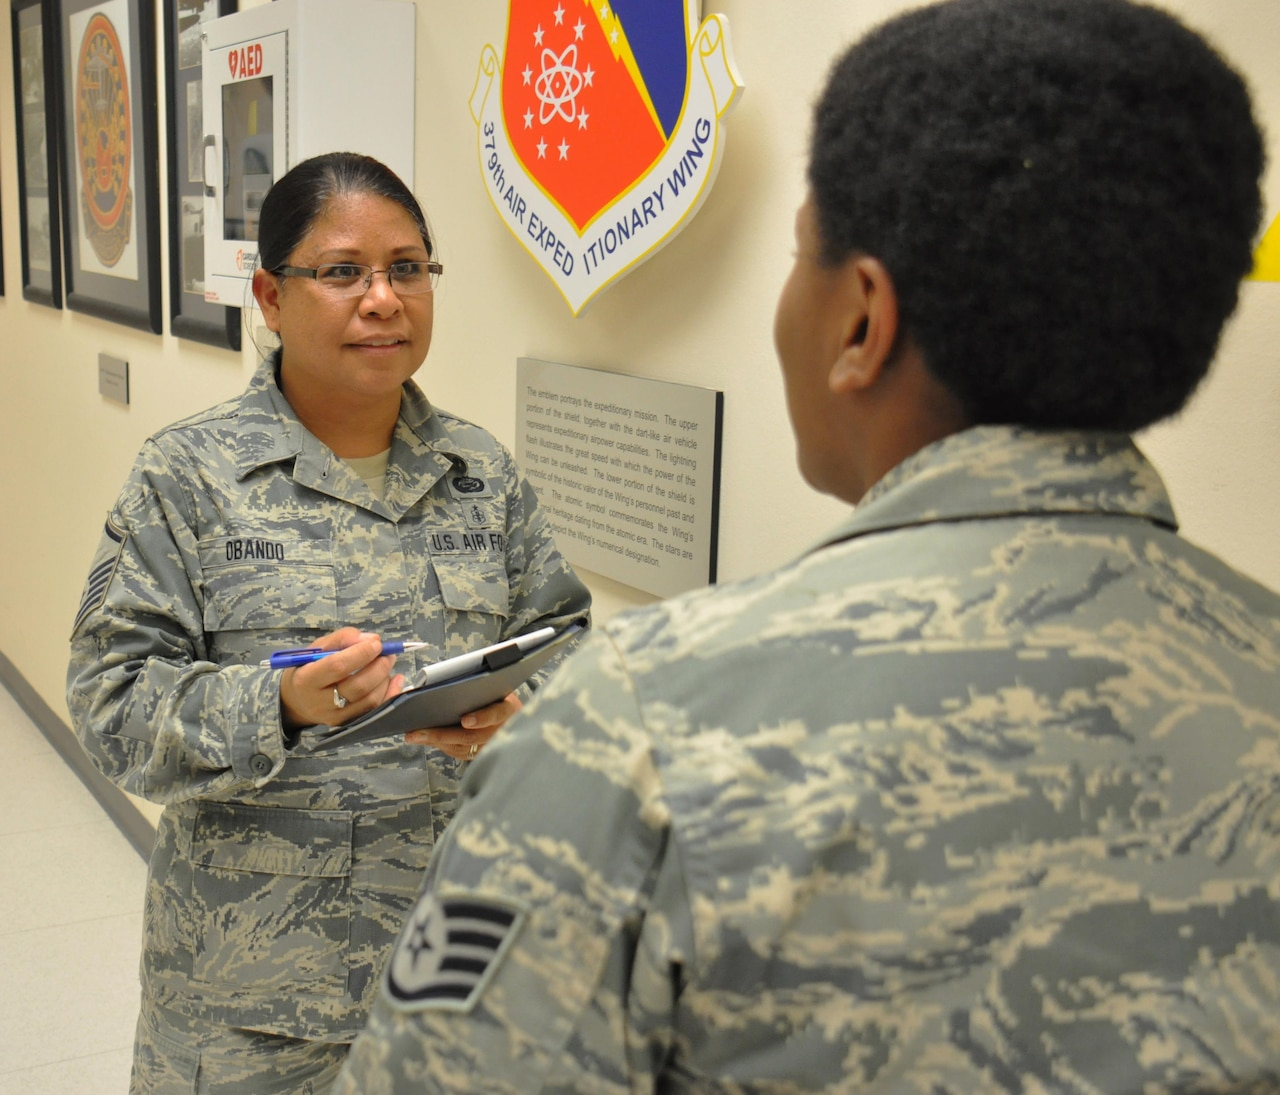 Air Force Master Sgt. Janine Obando, the 379th Air Expeditionary Wing's equal opportunity director, left, meets with Air Force Staff Sgt. Yolanda Jackson, the noncommissioned officer in charge of 379th AEW protocol on Al Udeid Air Base, Qatar, Jan. 21, 2016. Obando, who hails from Ewa, Hawaii, said it's important to meet with service members to foster trust between units and the EO office. Air Force photo by Tech. Sgt. James Hodgman